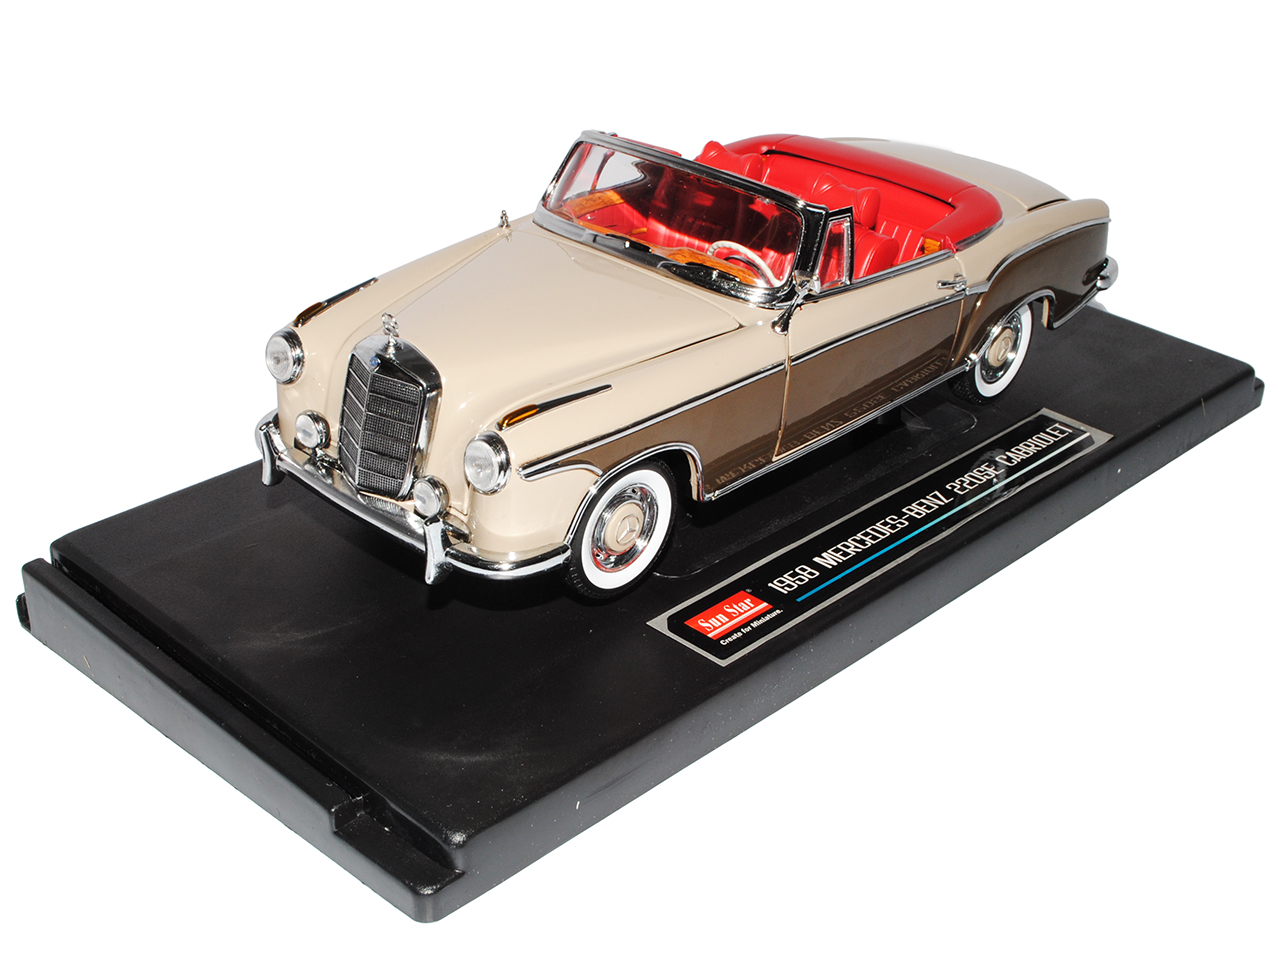 Mercedes-Benz 220se 220se 220se 1958 Cabrio BEIGE MARRON w128 1958-1960 1 18 SUN STAR Model... 21b46b